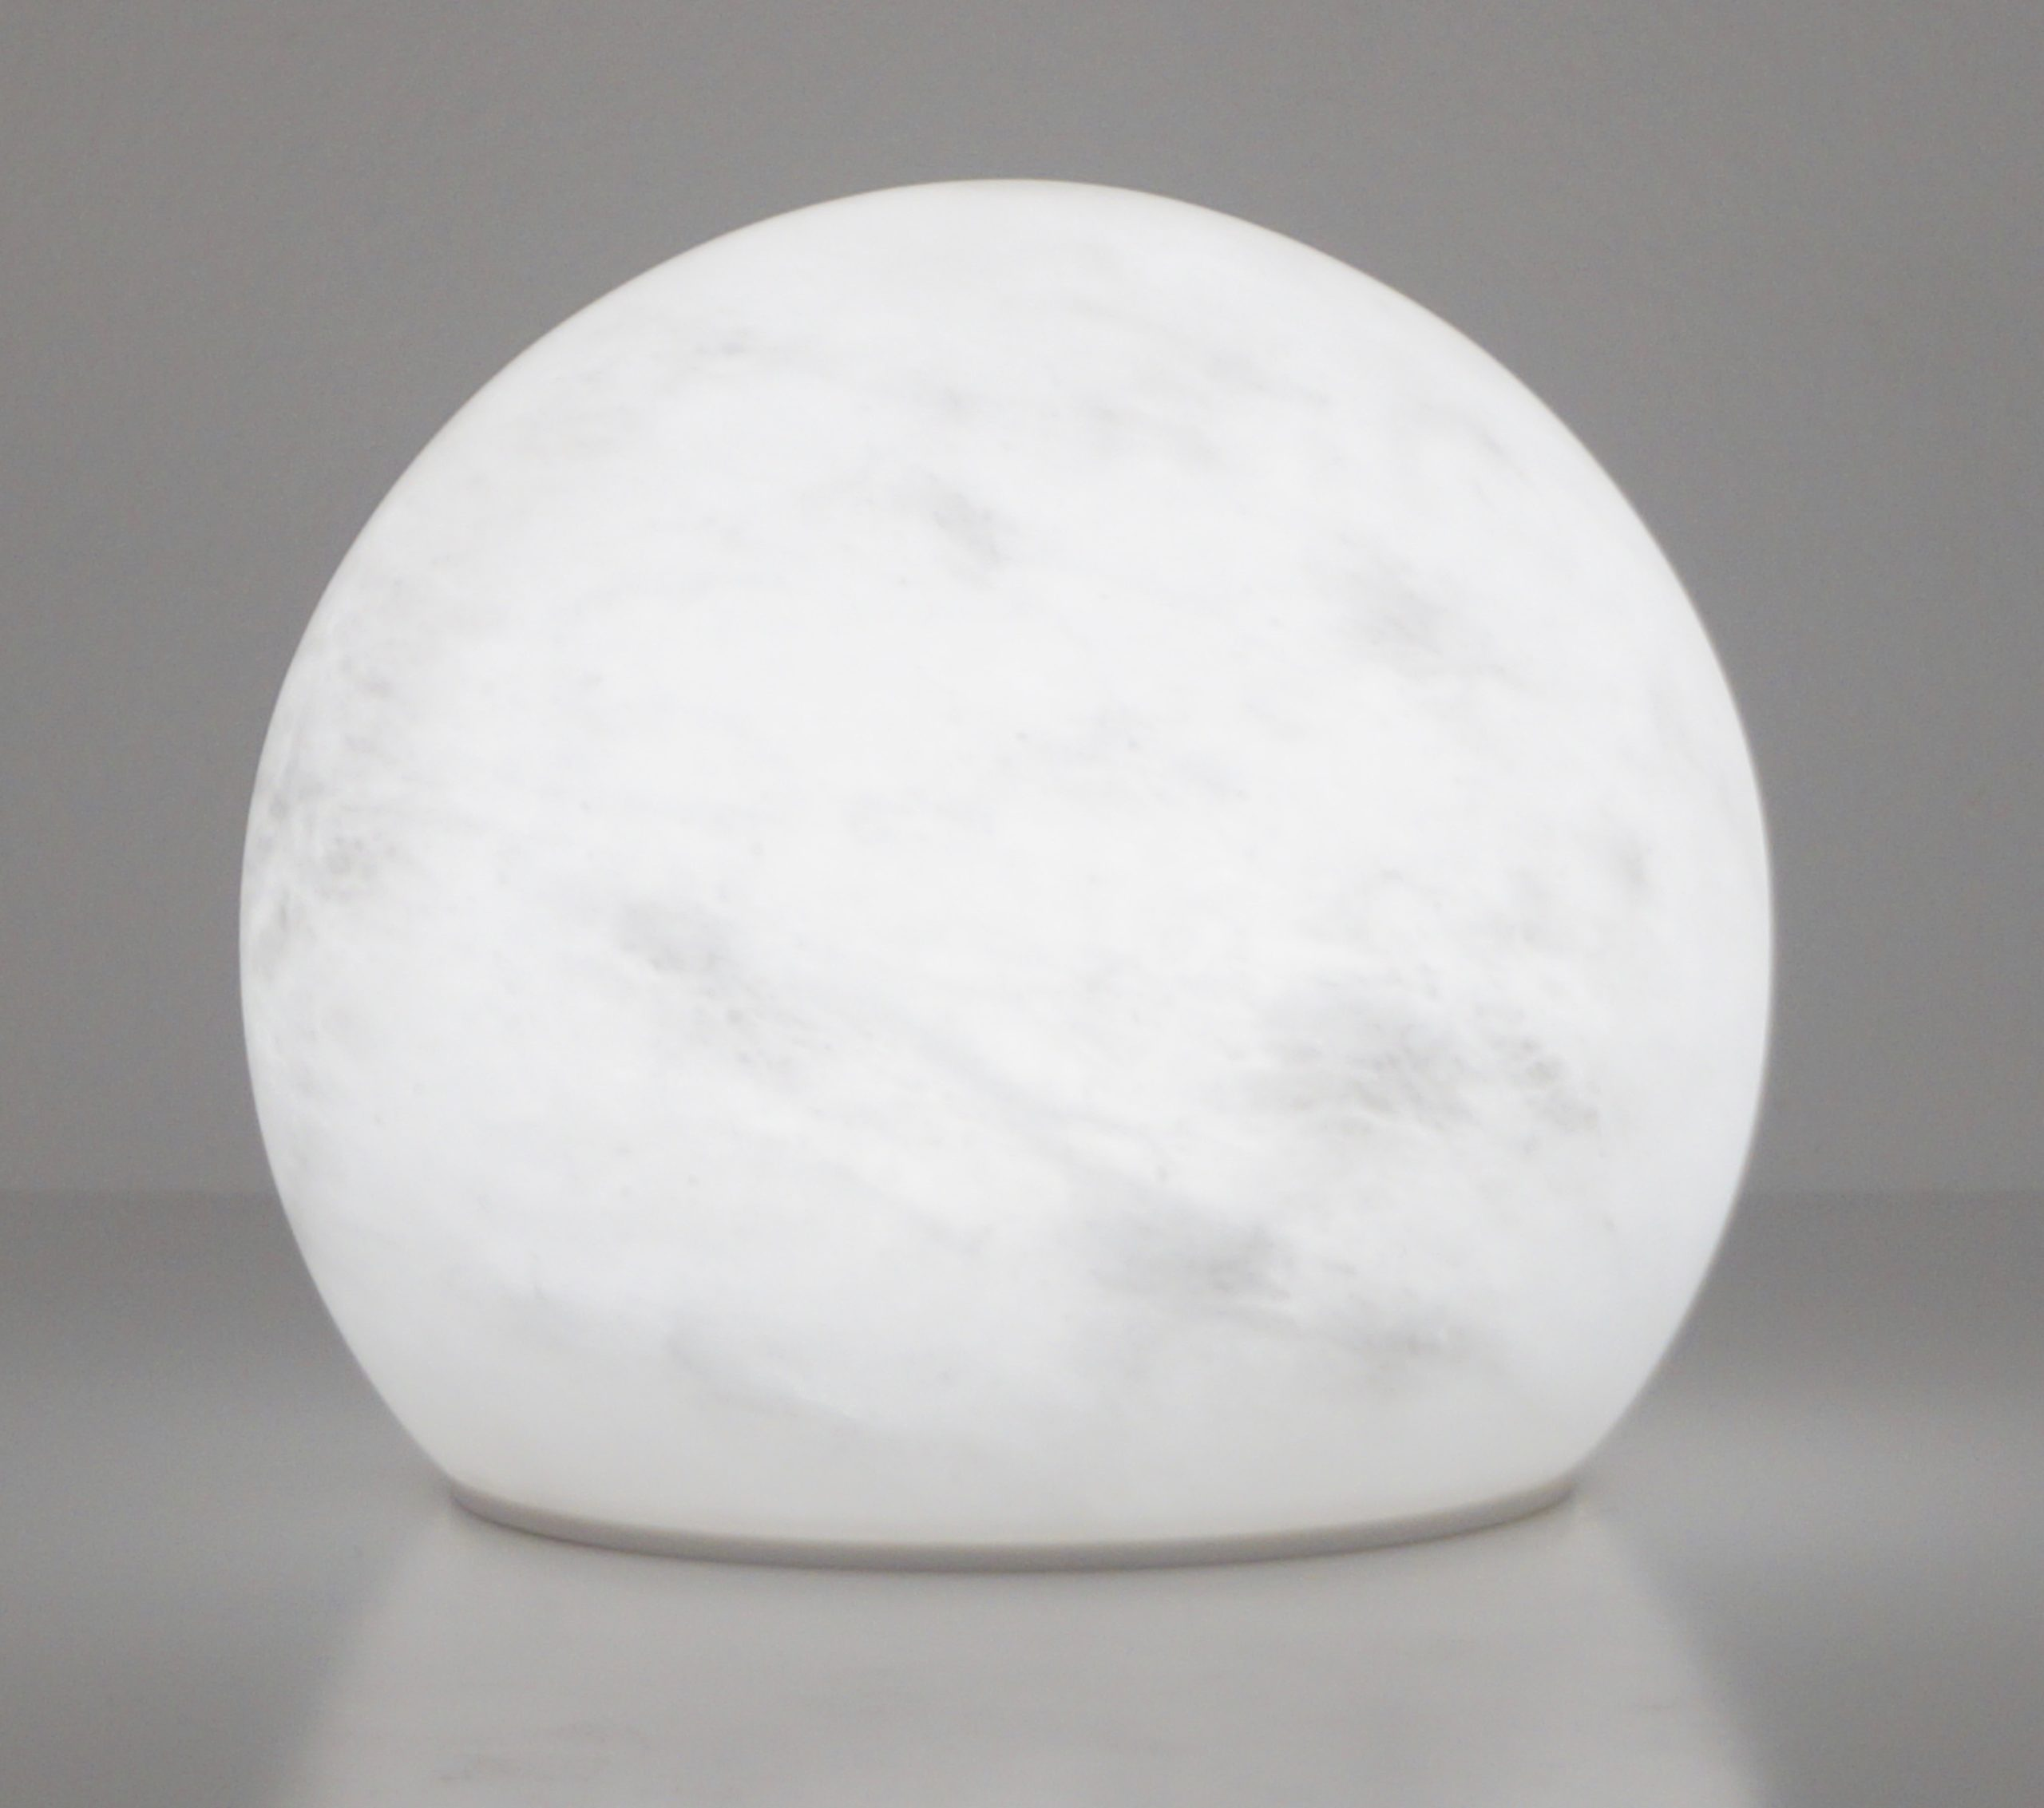 cosulich_interiors_and_antiques_products_new_york_design_Bespoke_Italian_Minimalist_White_Alabaster_Moon_Wireless_Round_Table_1-scaled-1